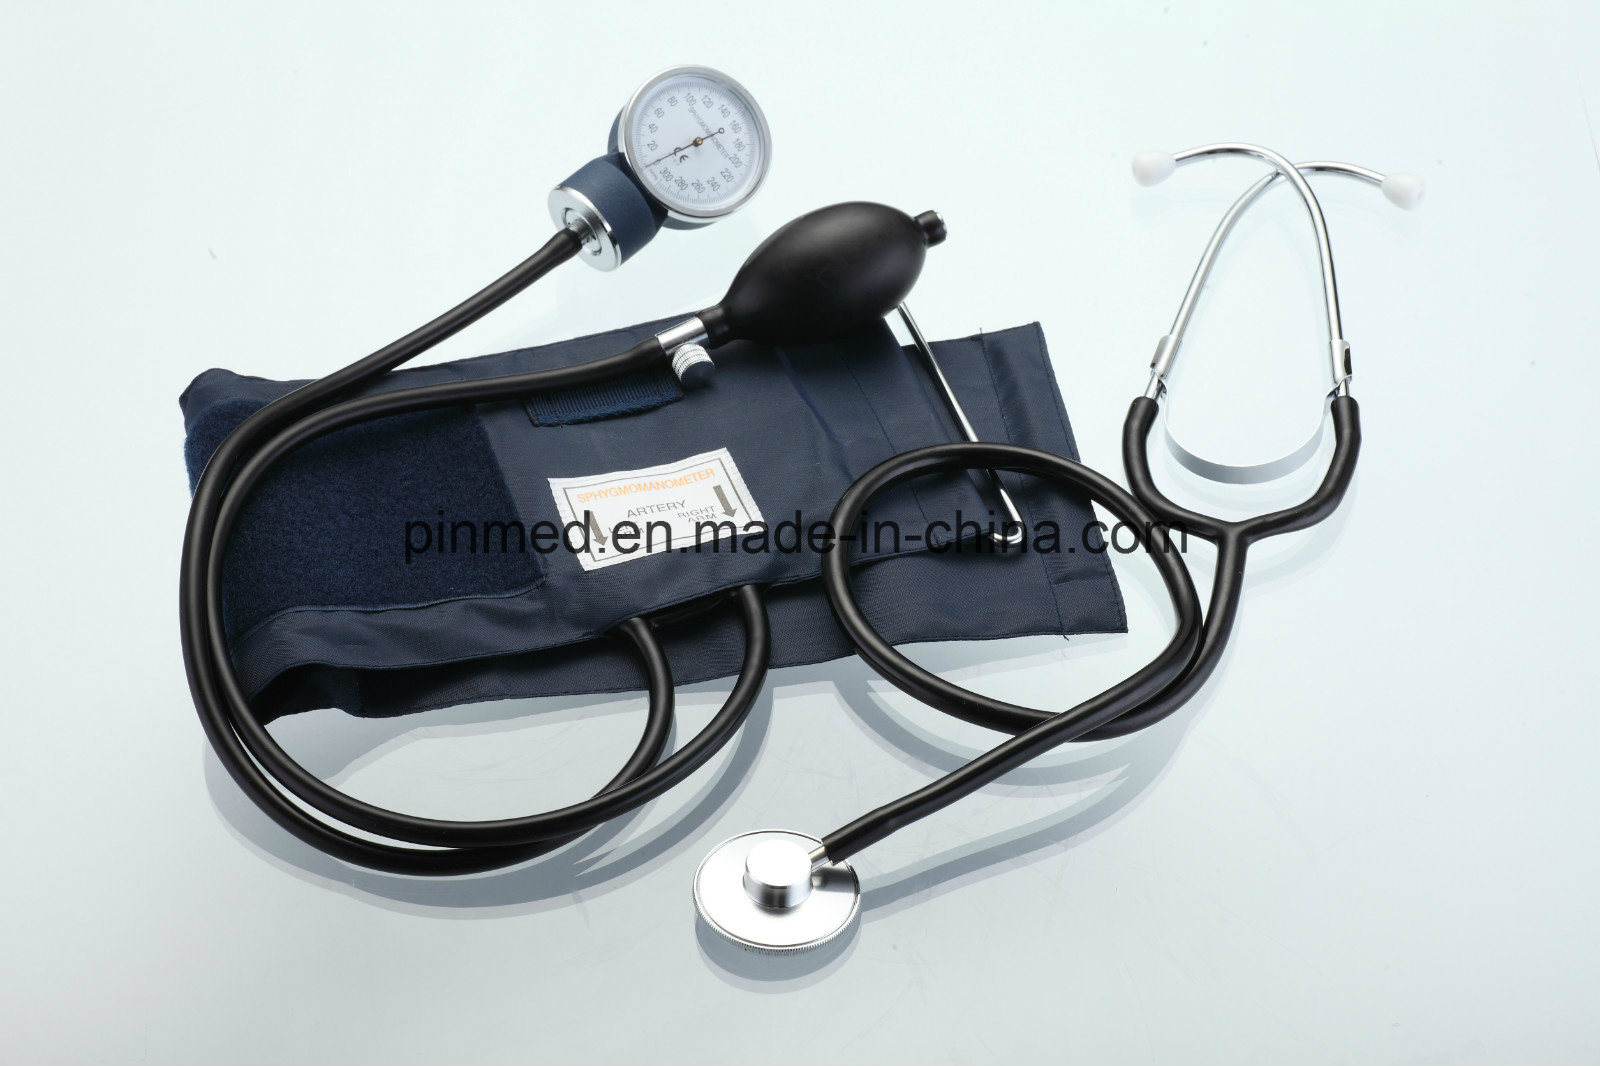 Standard Sphygmomanometer with Attached Single Head Stethoscope